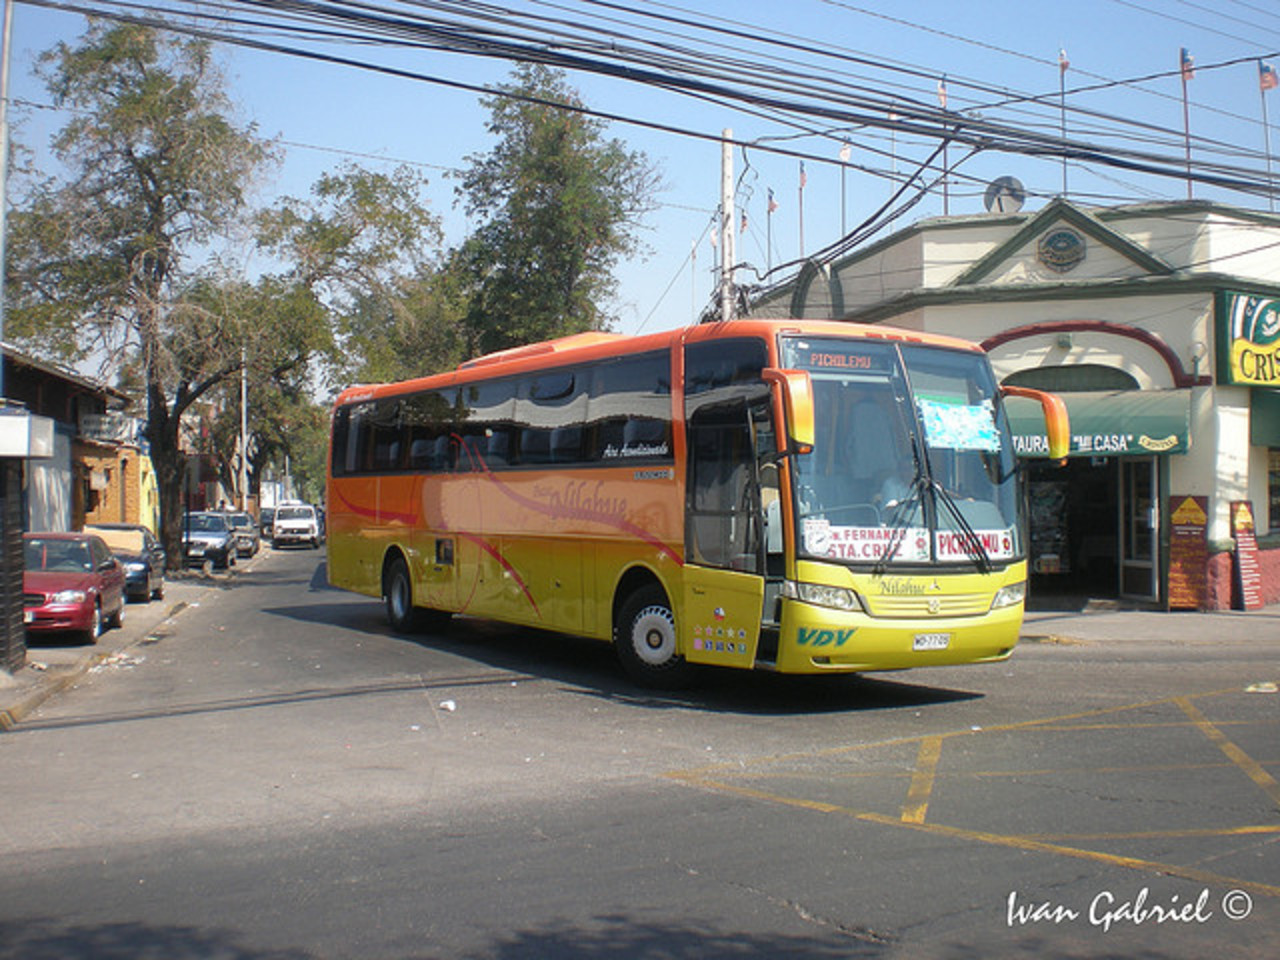 Buses Nilahue / Busscar Visstabuss Lo | Flickr - Photo Sharing!